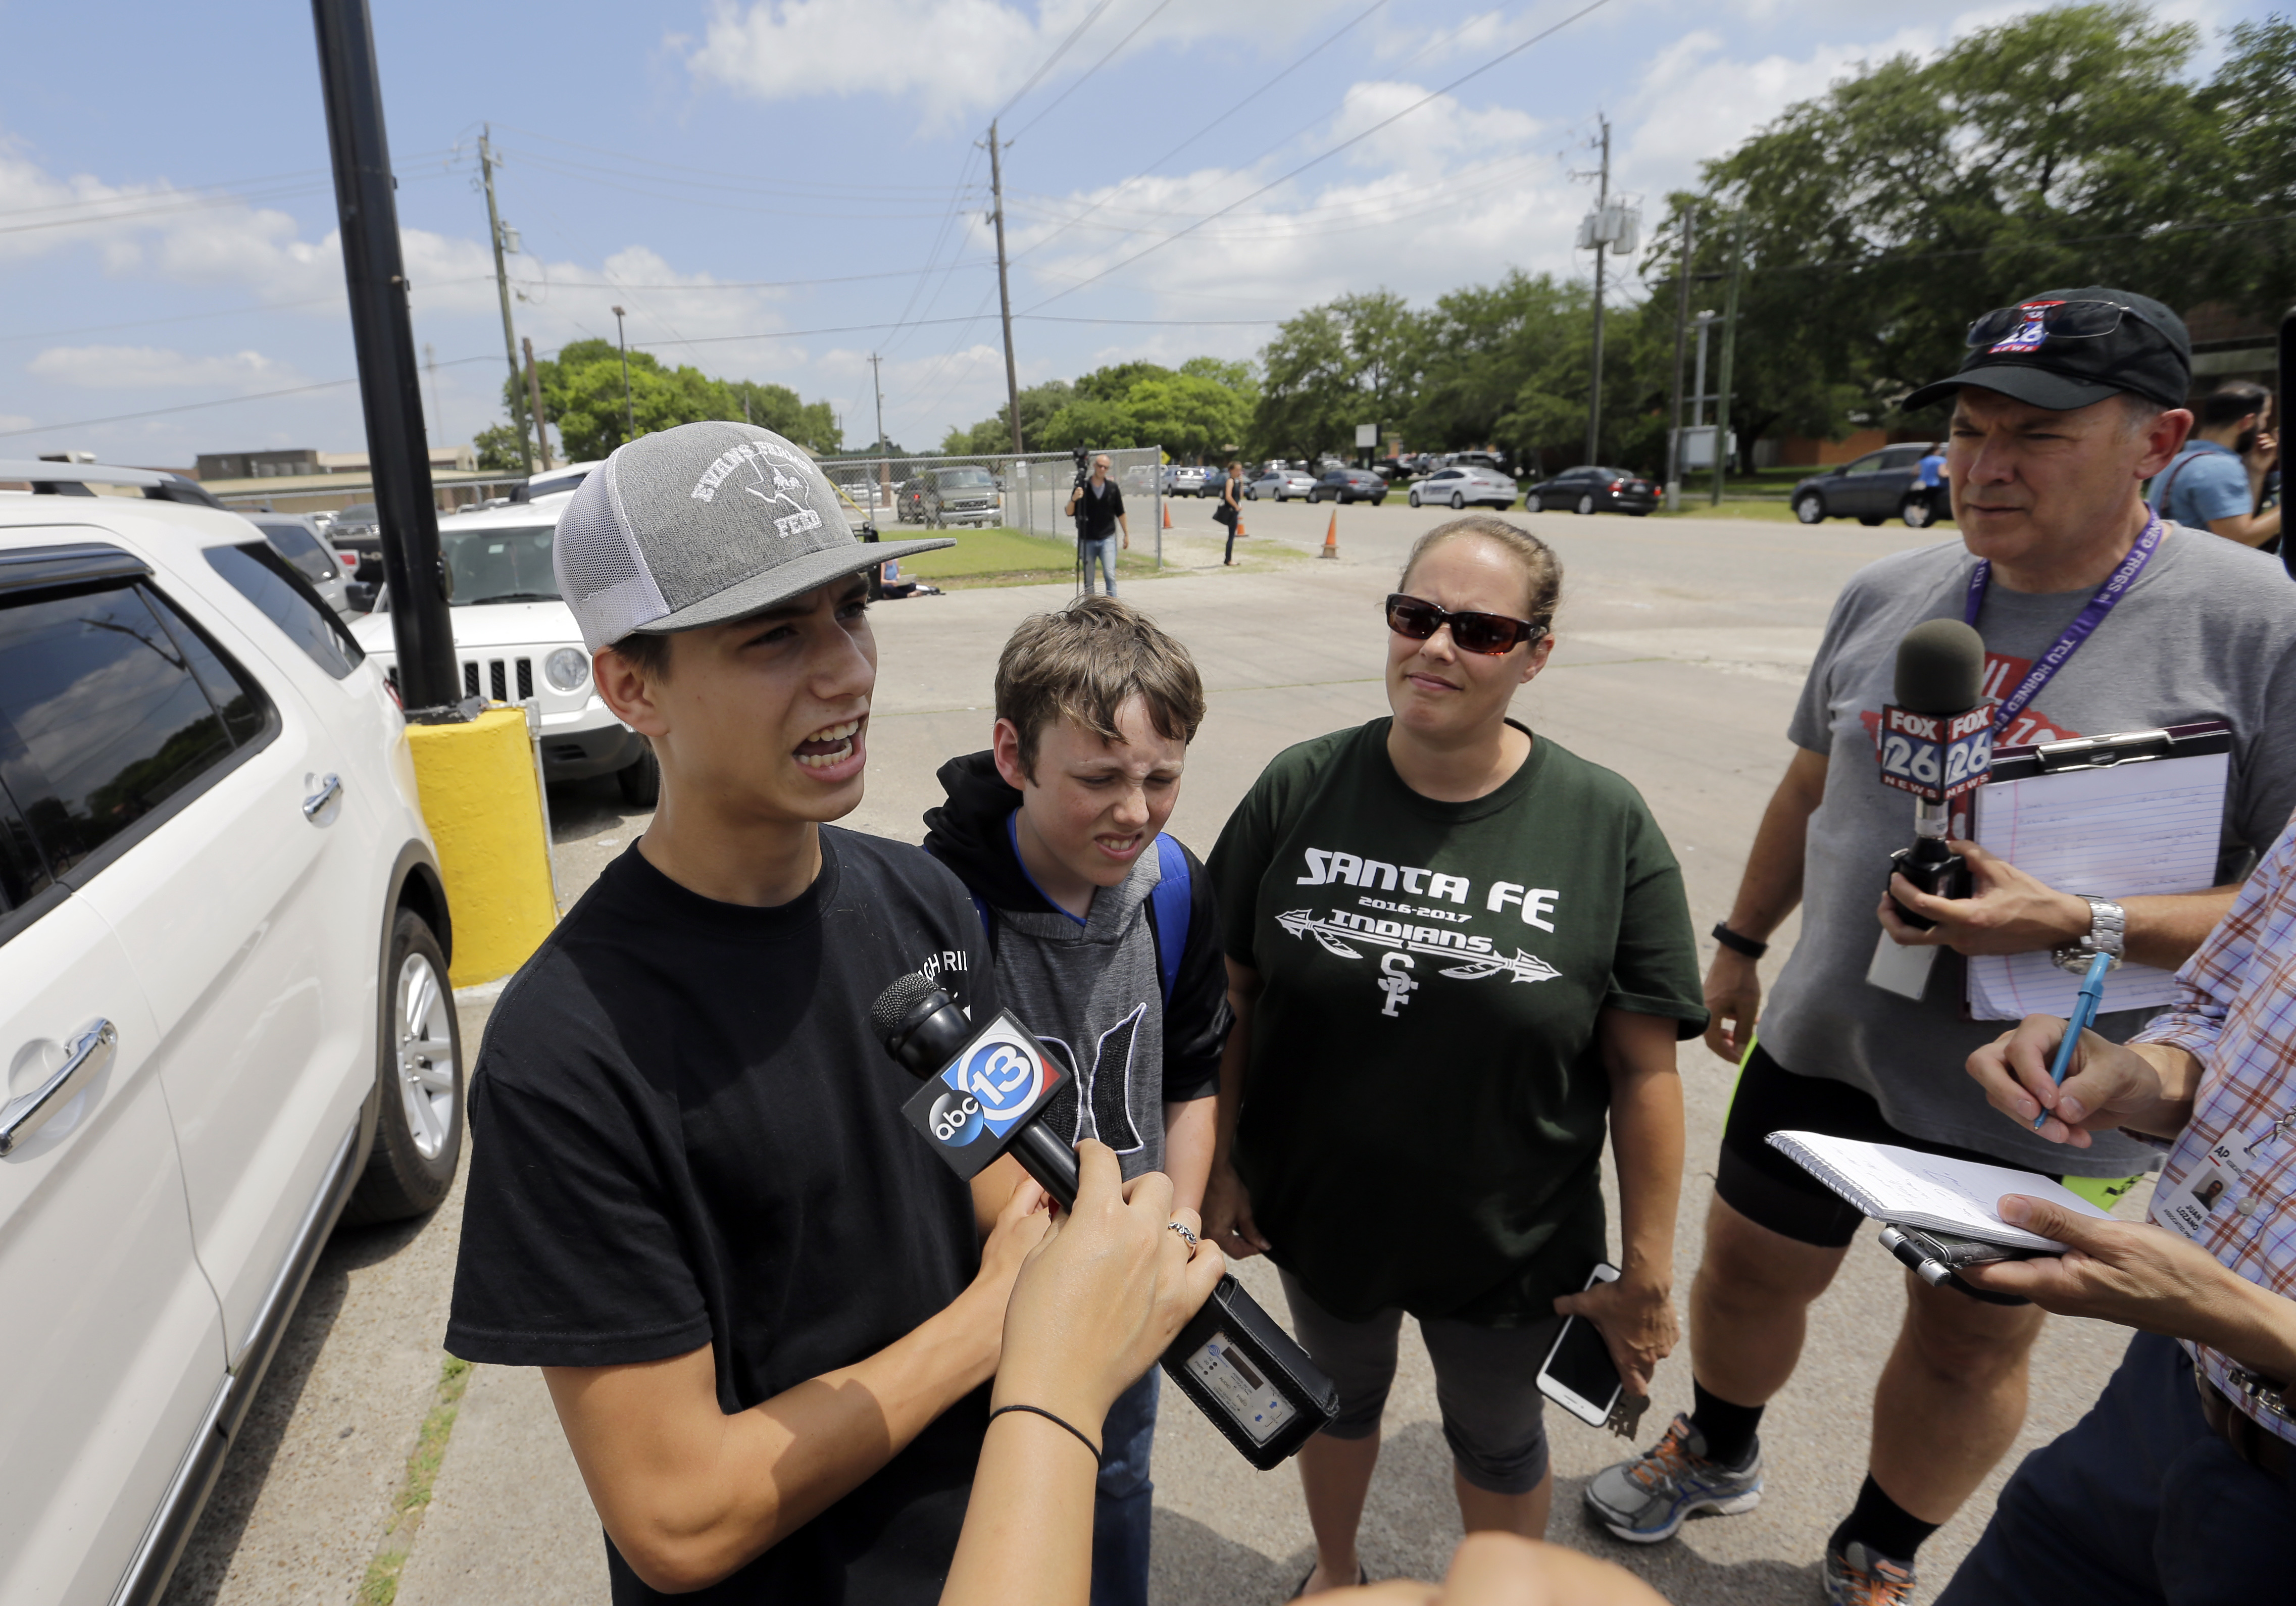 <div class='meta'><div class='origin-logo' data-origin='AP'></div><span class='caption-text' data-credit='AP'>Santa Fe High School senior Logan Roberds, left, talks to reporters outside the Alamo Gym Friday, May 18, 2018, in Santa Fe, Texas. (AP Photo/David J. Phillip)</span></div>